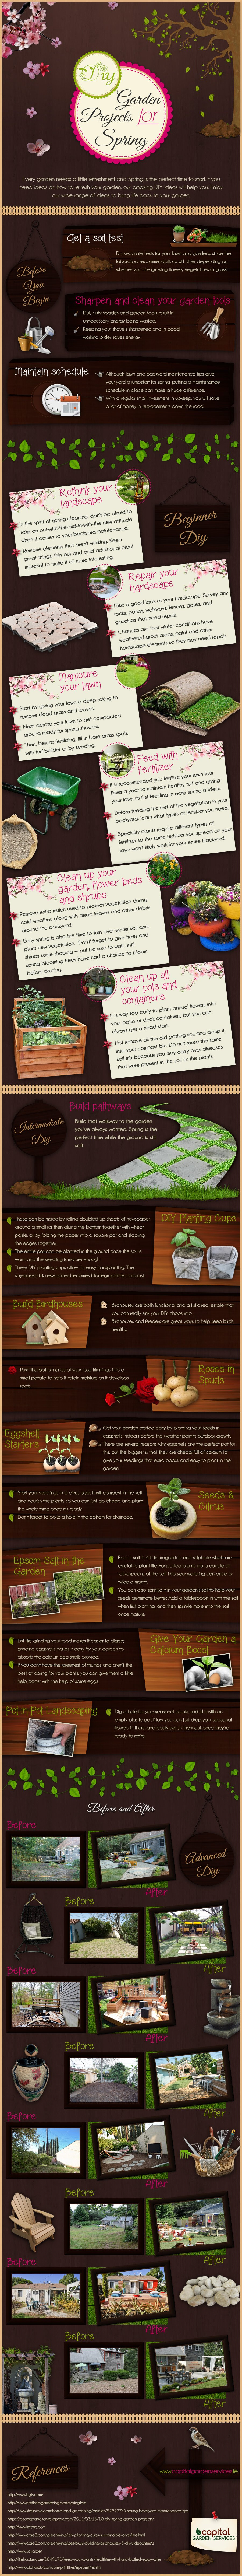 DIY-Garden-Projects-for-Spring